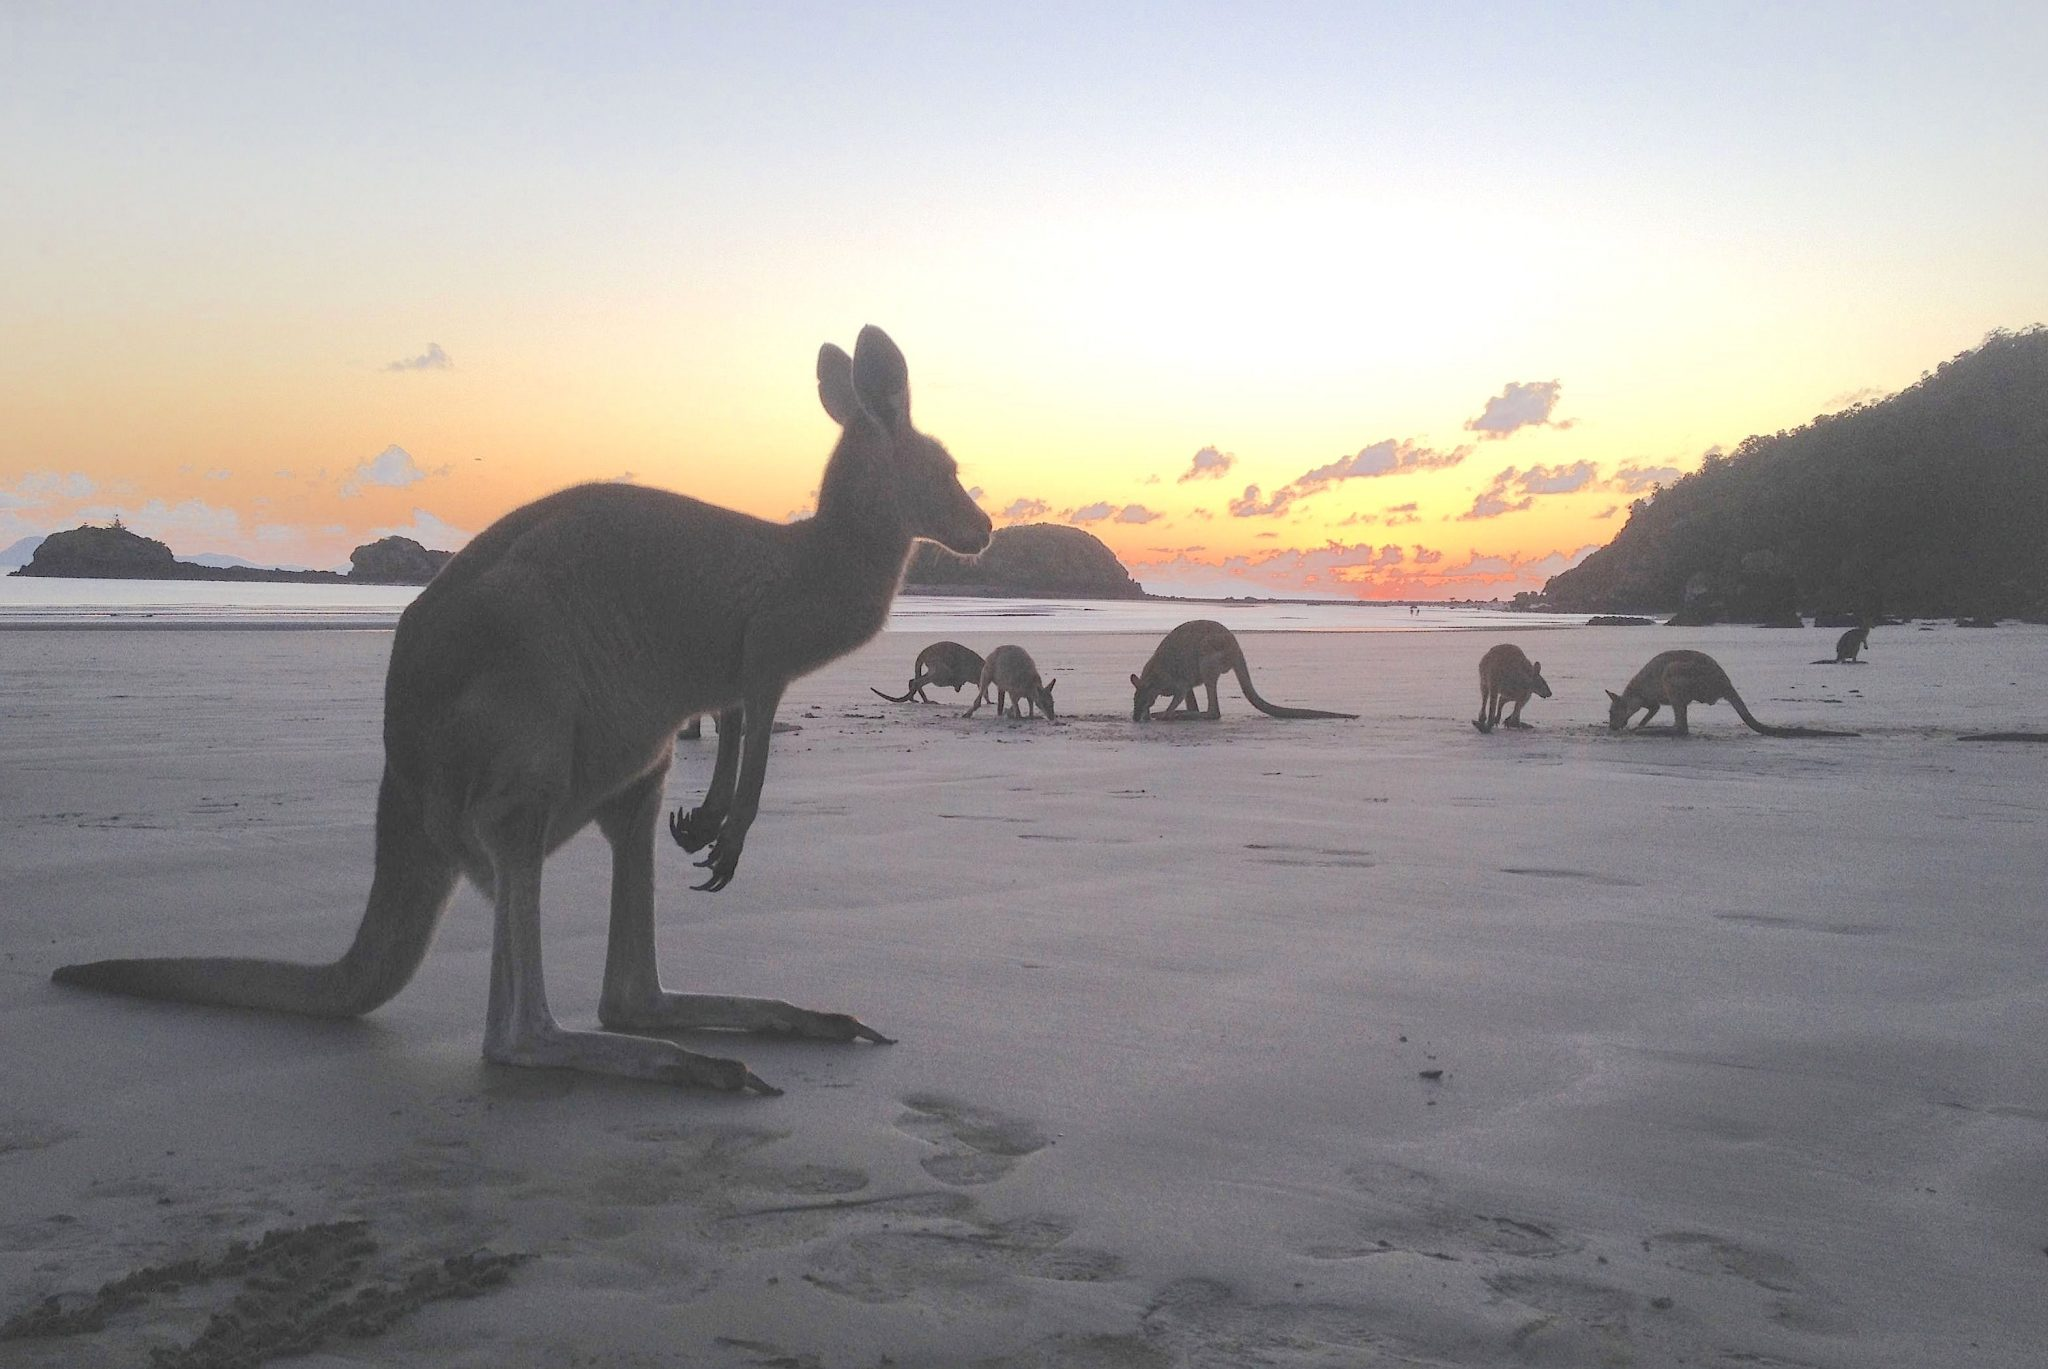 13. This is just a sneek preview of what extraordinary things you will see in this blog entry. Kangaroos and wallabies, one with a joey in her pouch, at sunrise on Cape Hillsborough, Aus